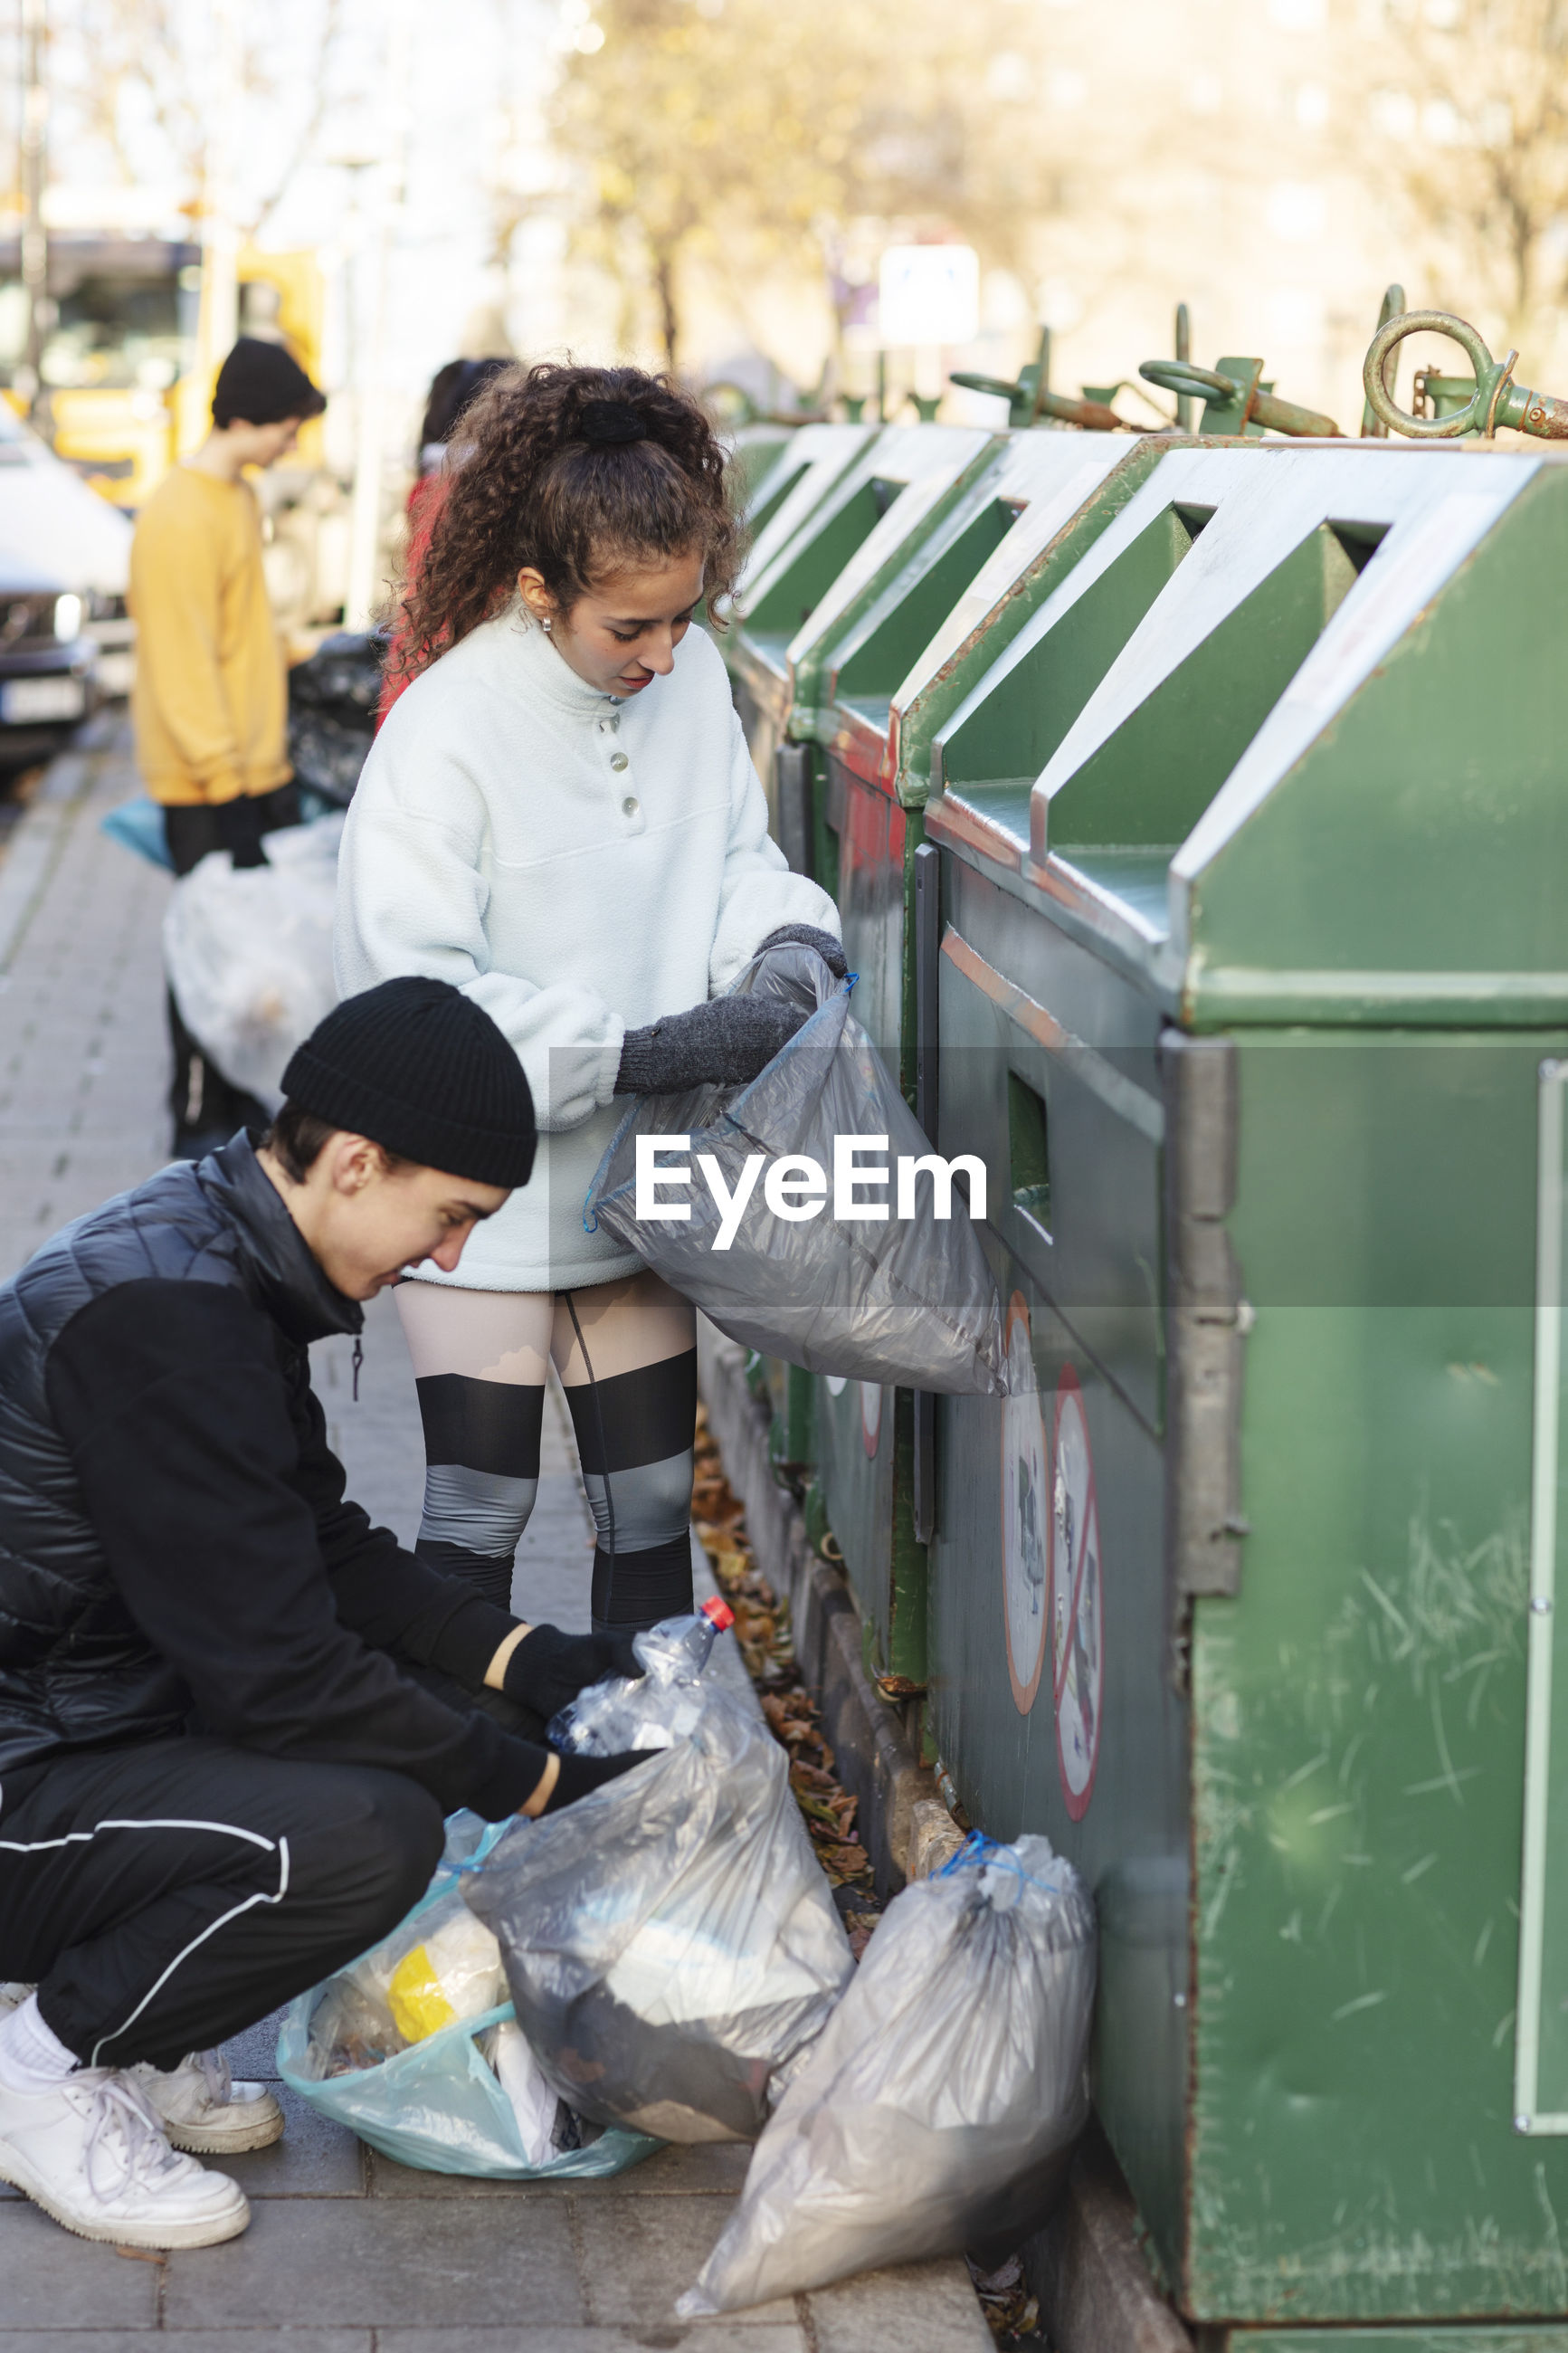 REAR VIEW OF PEOPLE IN A GARBAGE